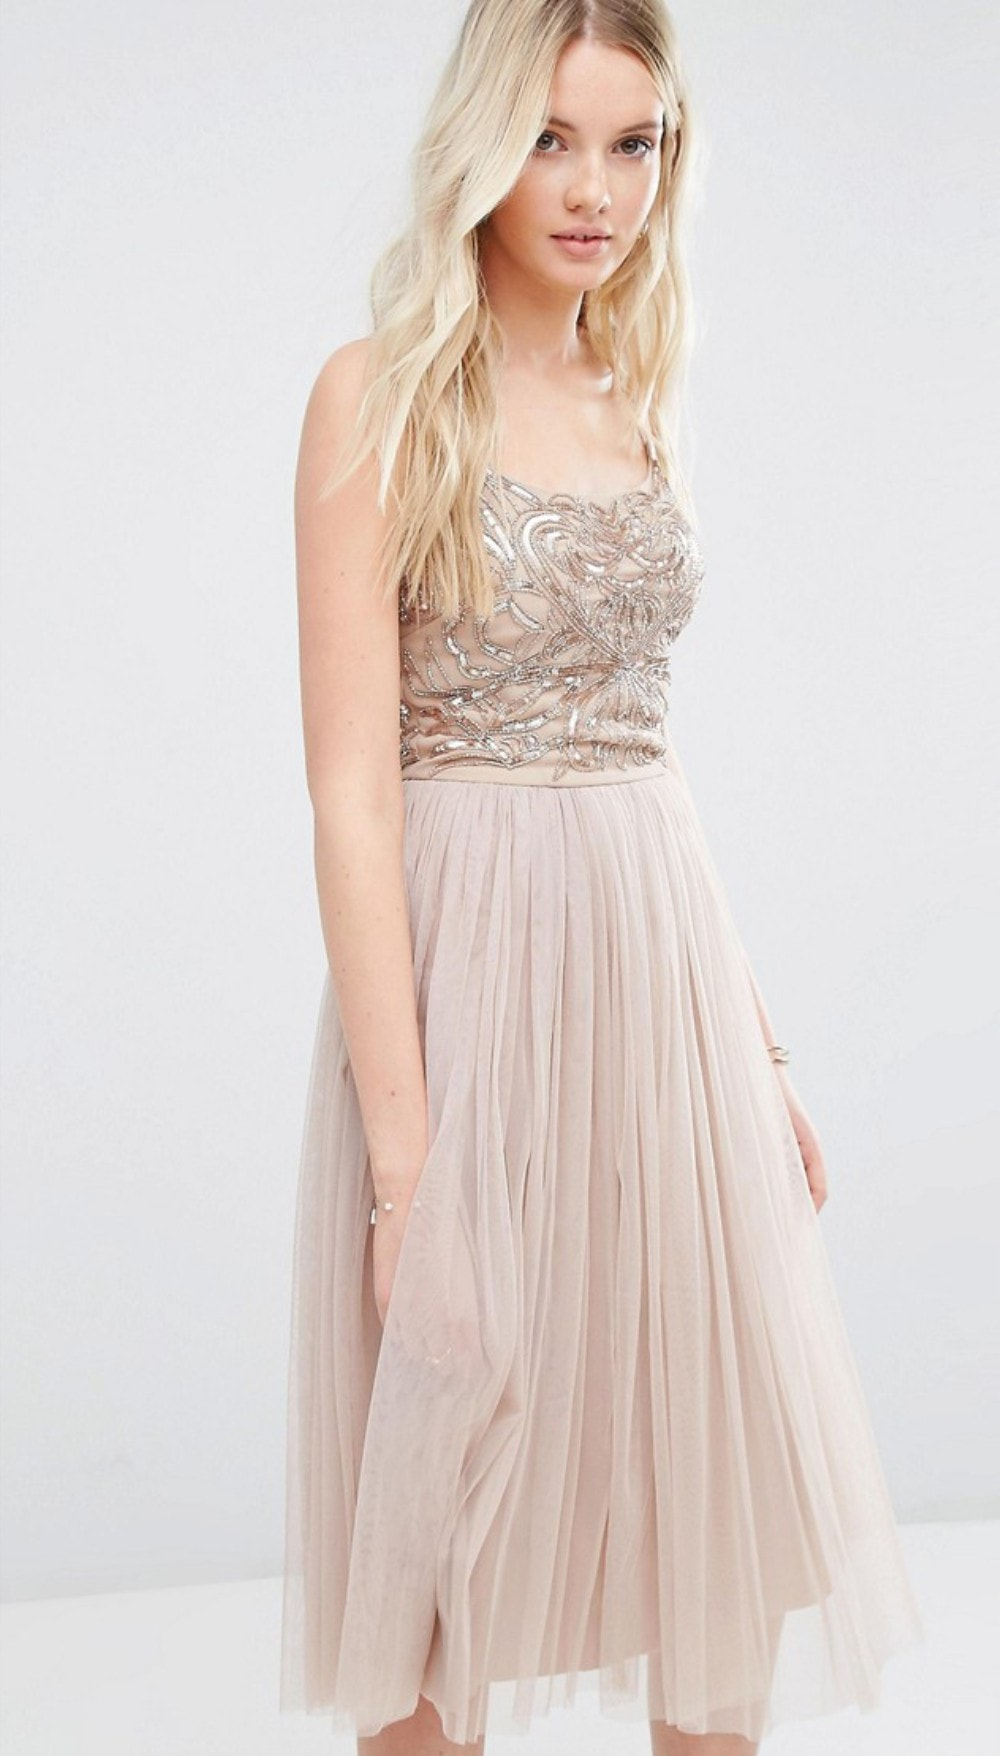 Sparkle And Tulle Wedding Style Inspiration Dress For